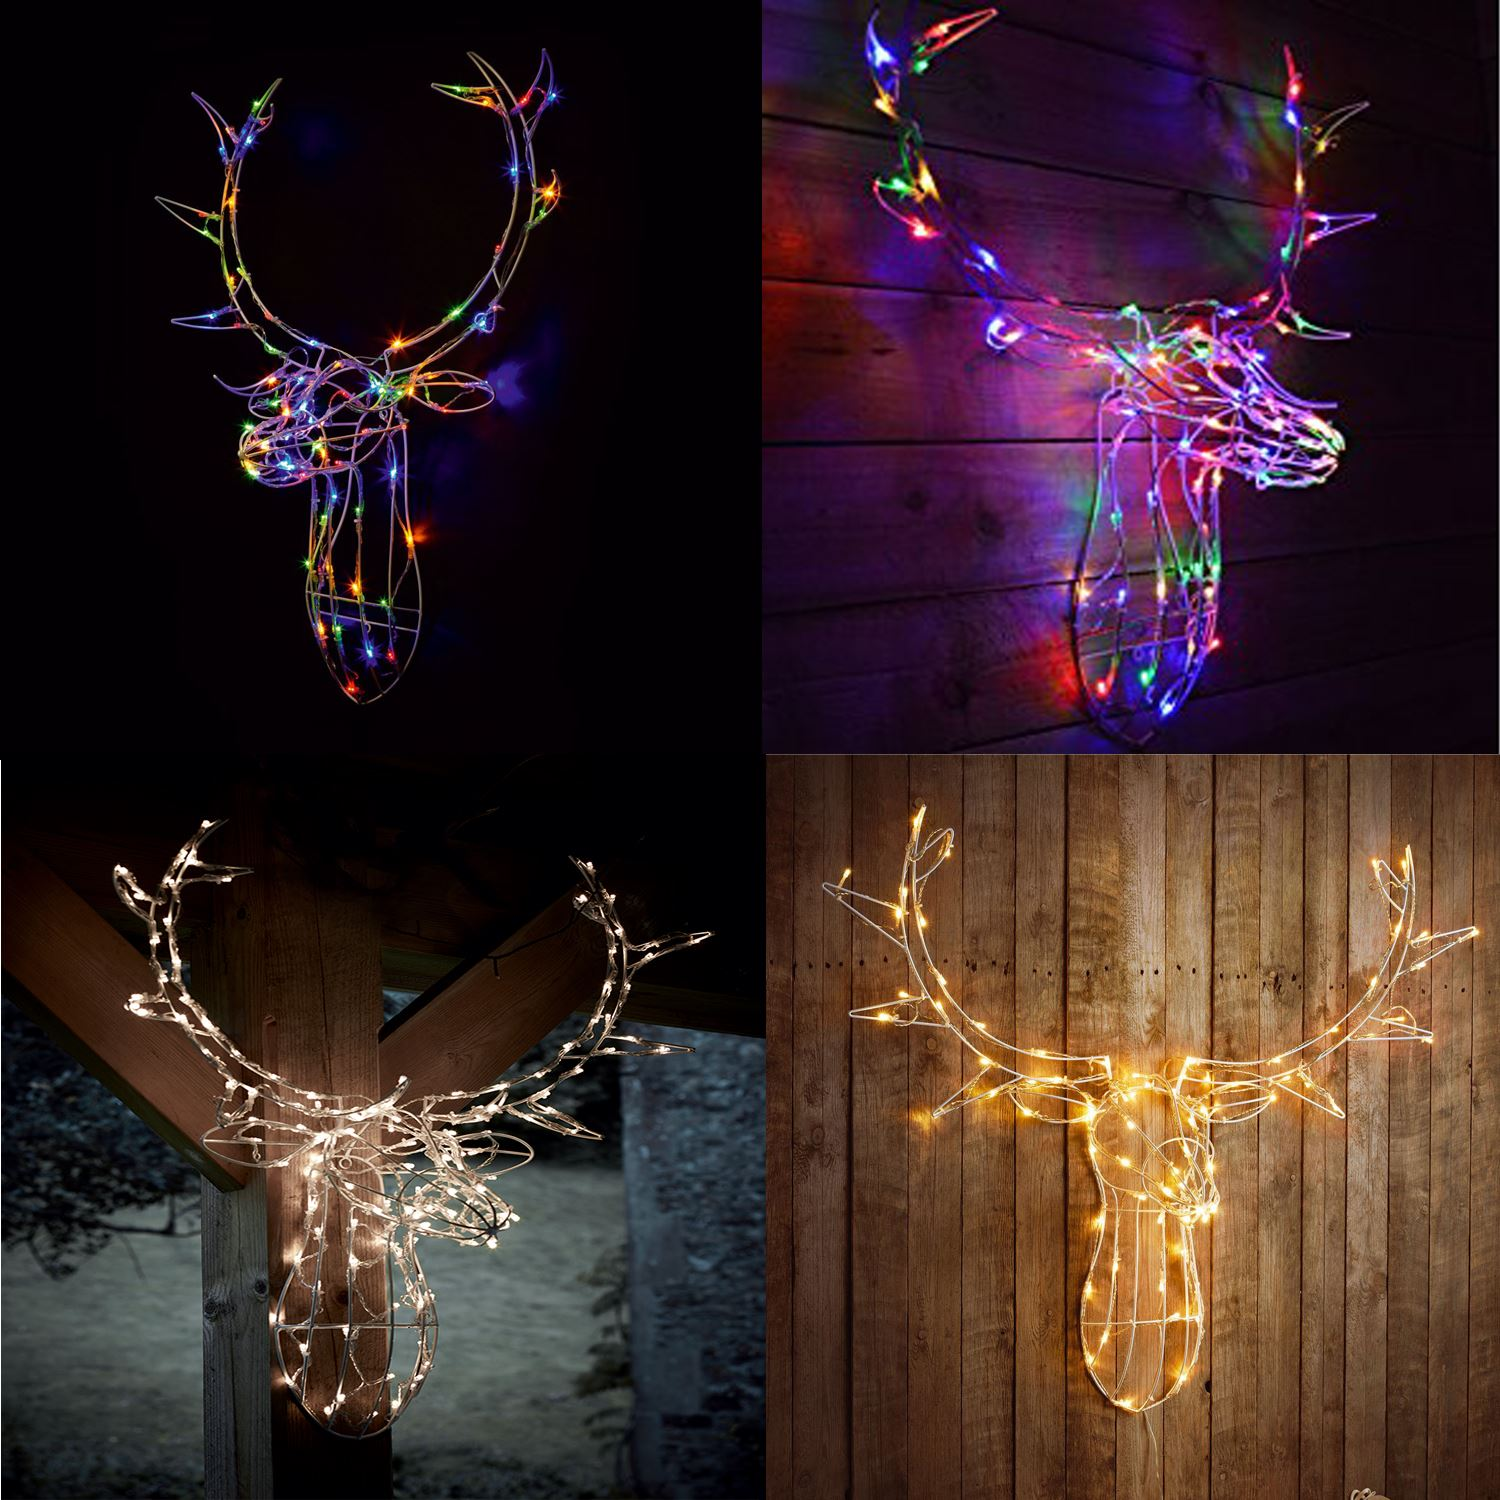 Details about Reindeer Stag Head 80 LED Light Up Warm WhiteMulti Colour Xmas Wall Decoration